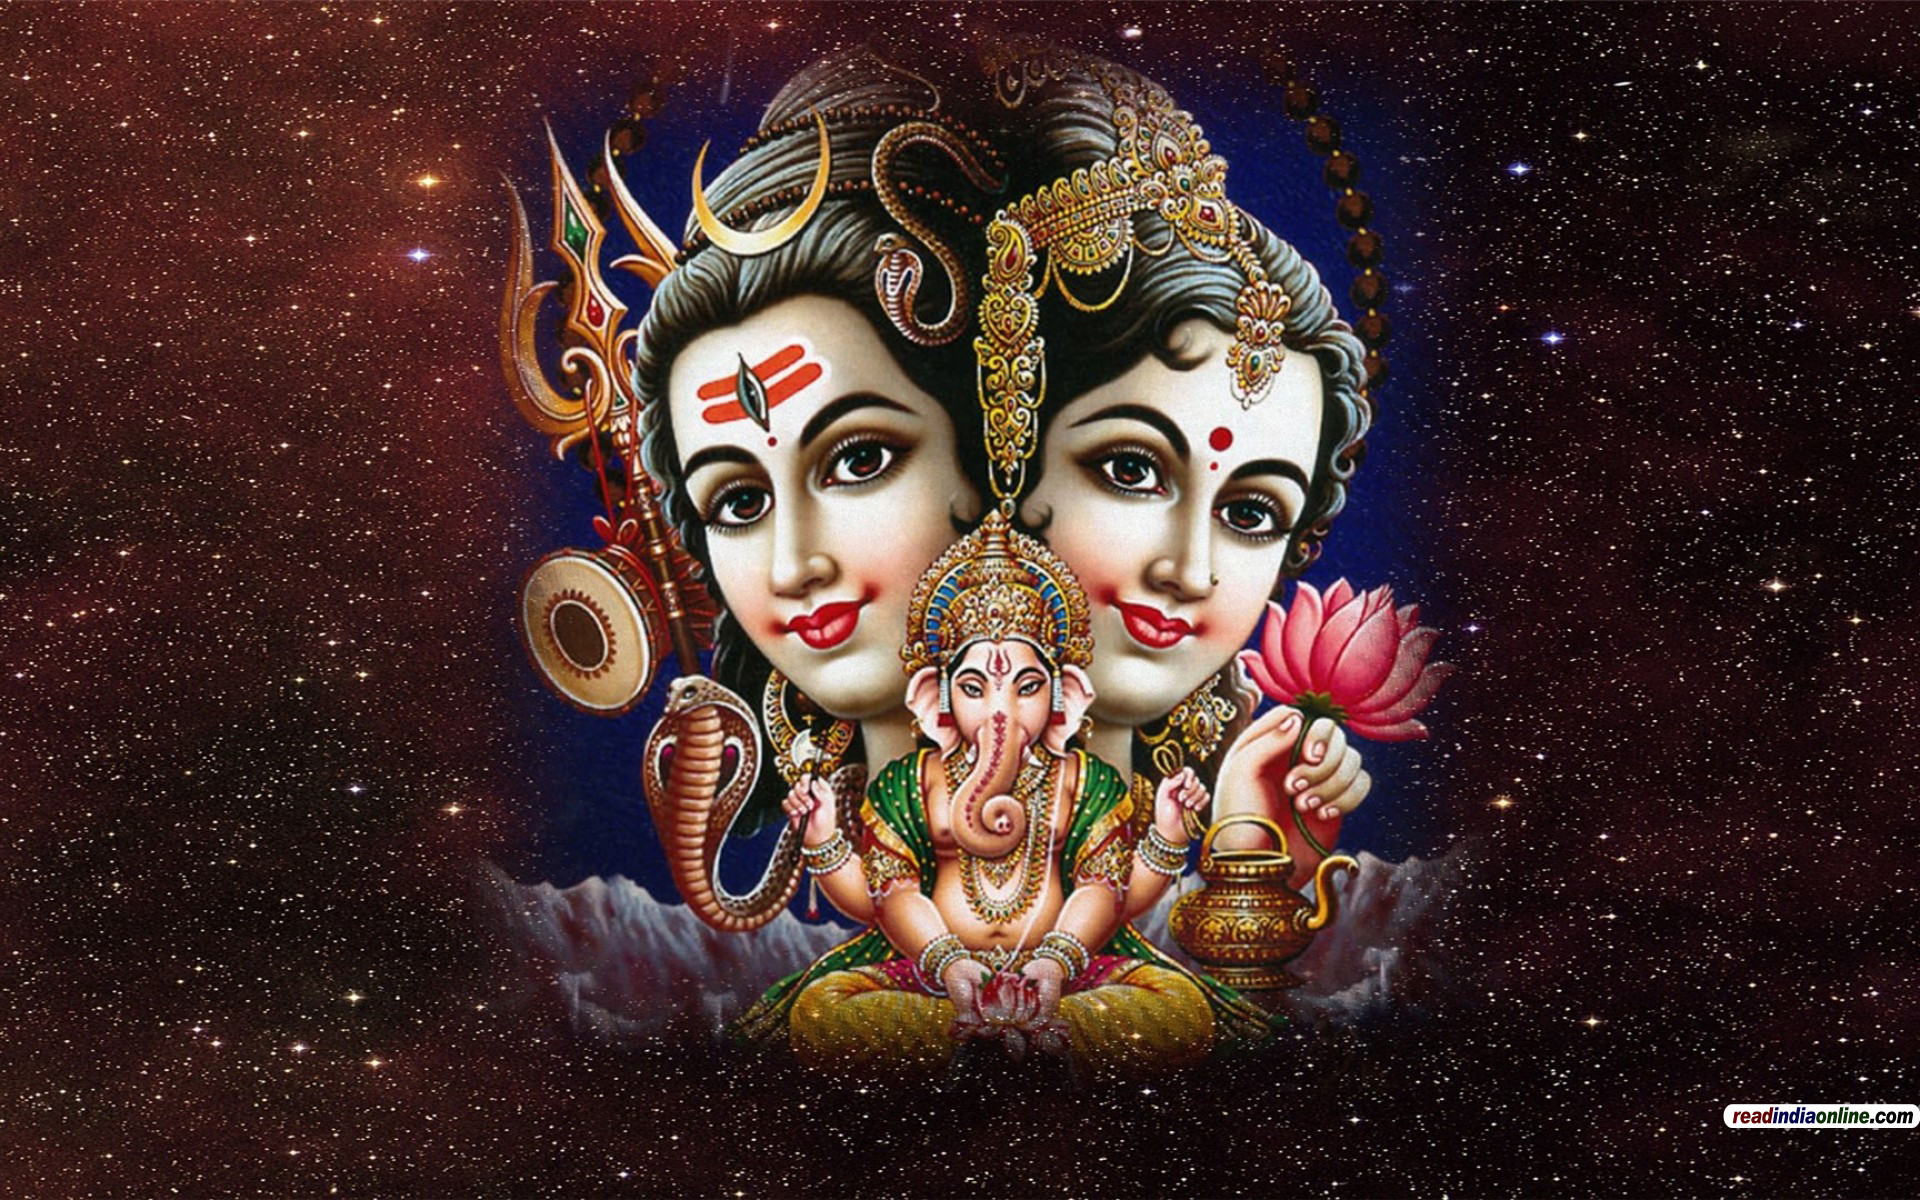 Hindu god hd wallpapers 1080p 68 images - God images wallpapers ...